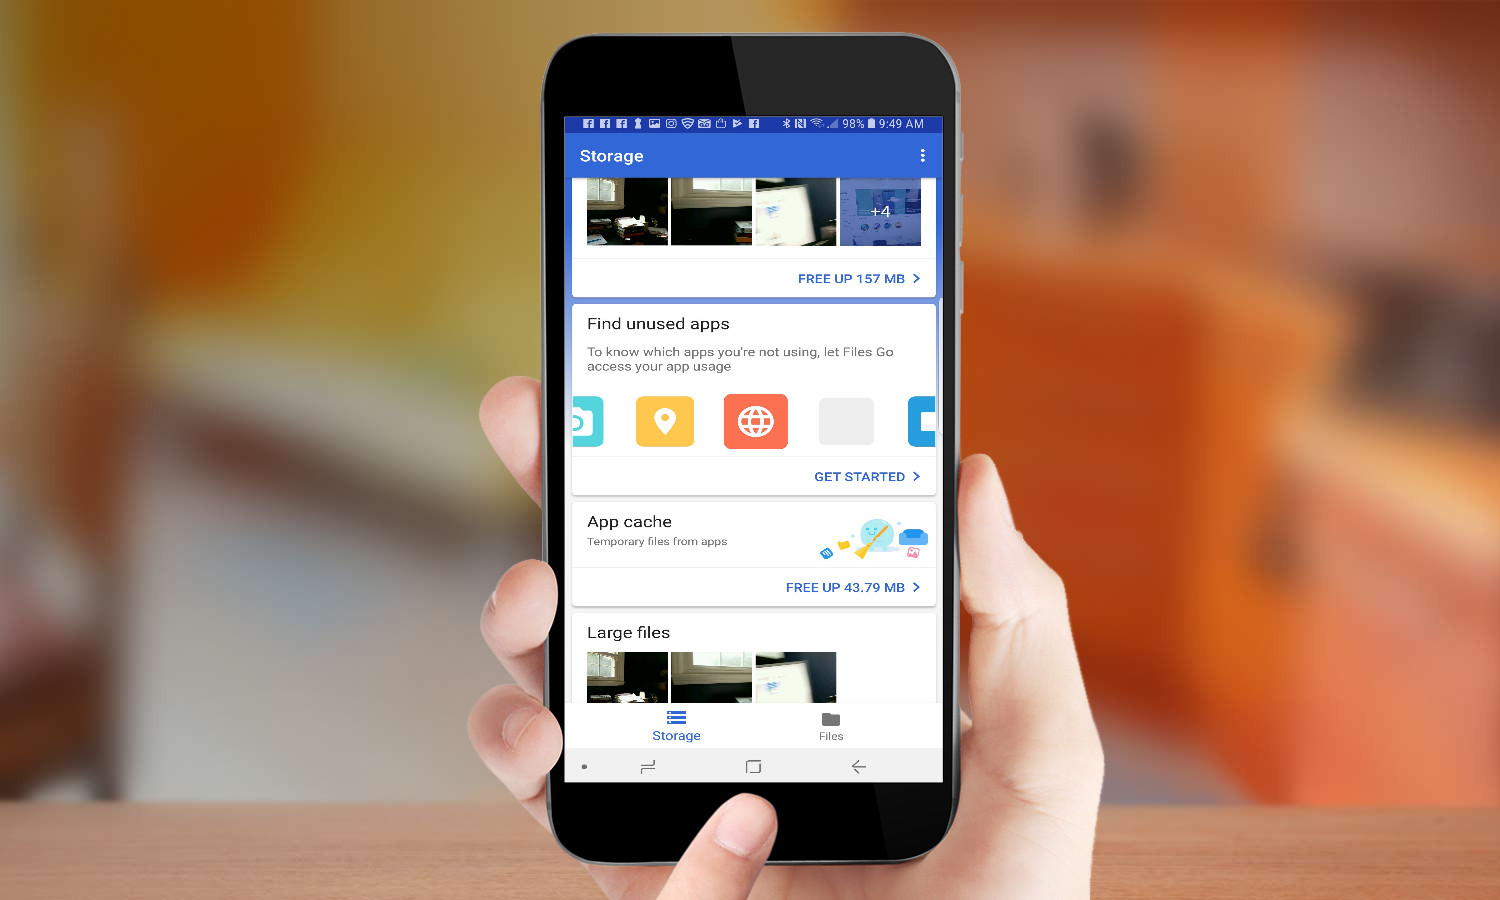 How to Use Google's Files Go App to Save Smartphone Space